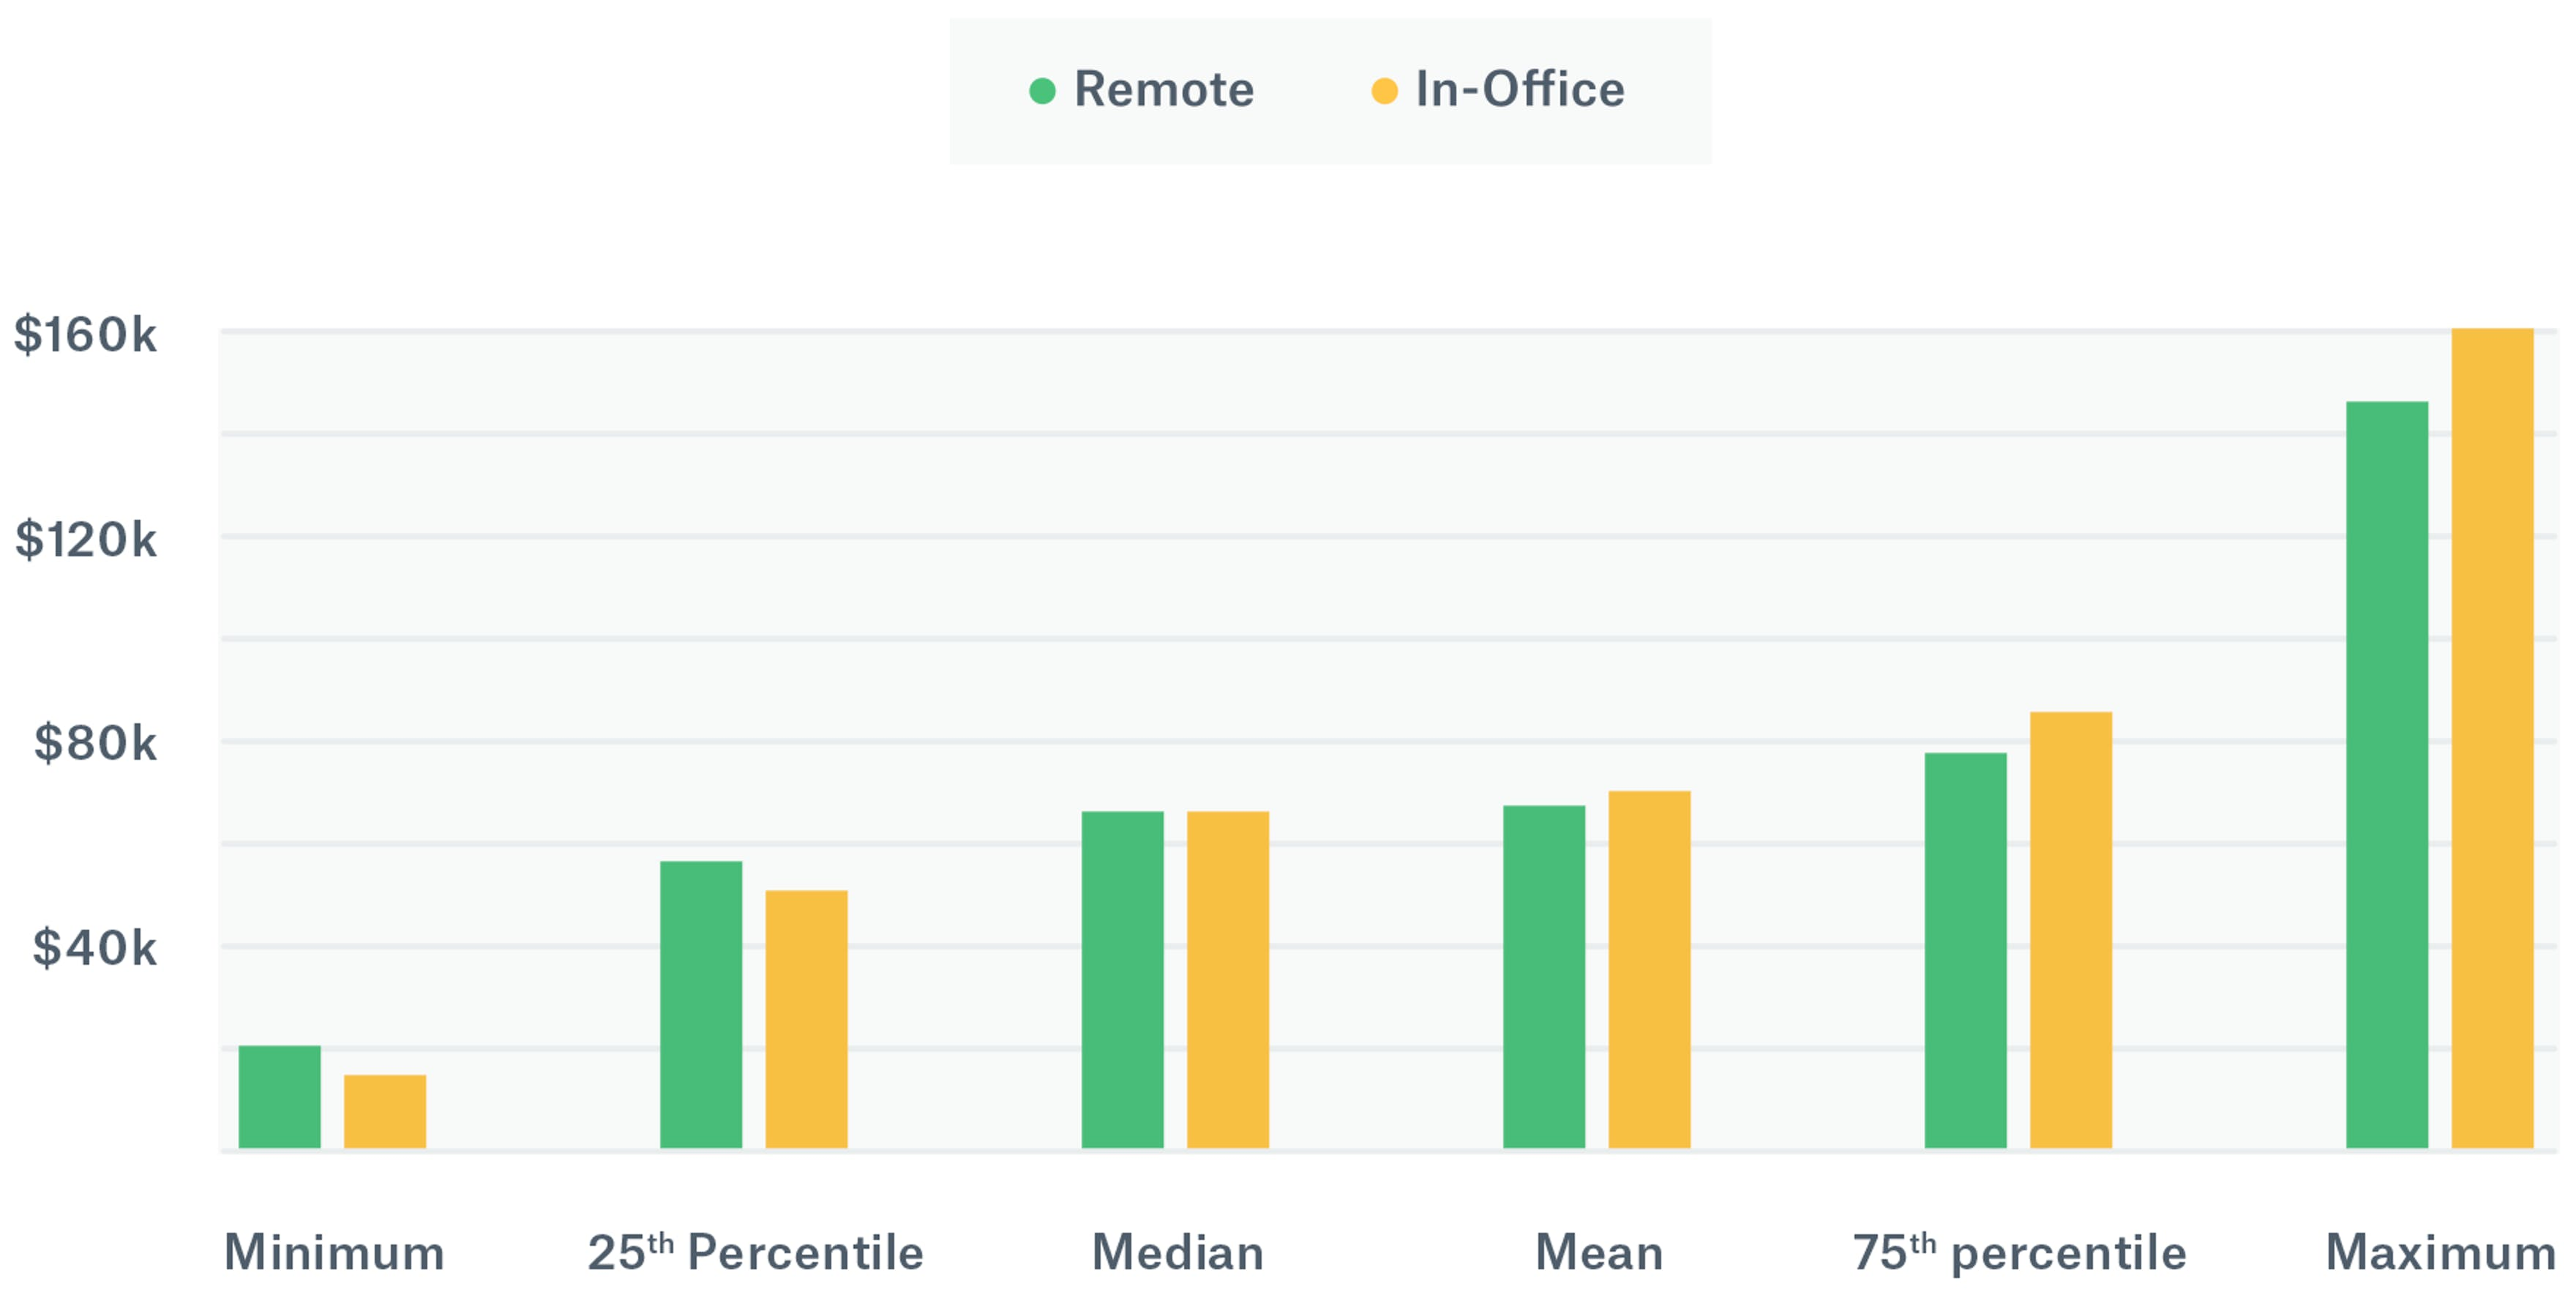 Chart illustrating the salary differences of remote vs in-office workers